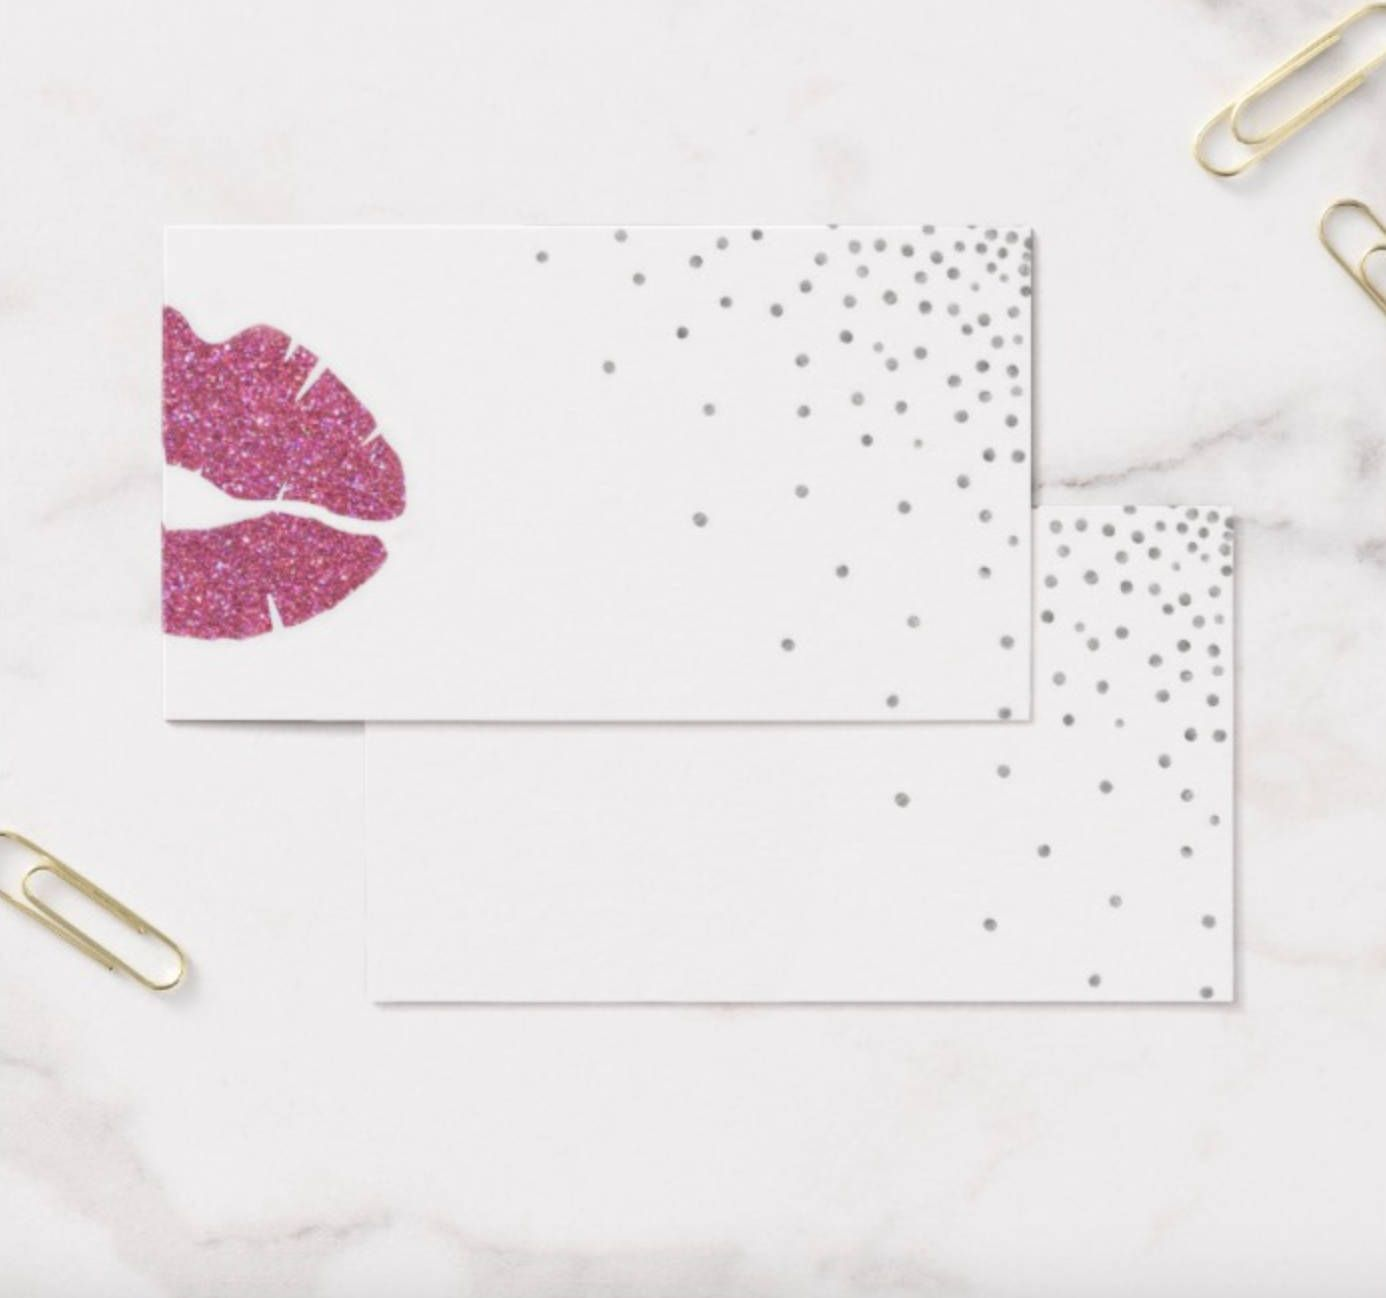 Senegence Lipsense Business Cards Fb Cover Photos Loyalty Cards